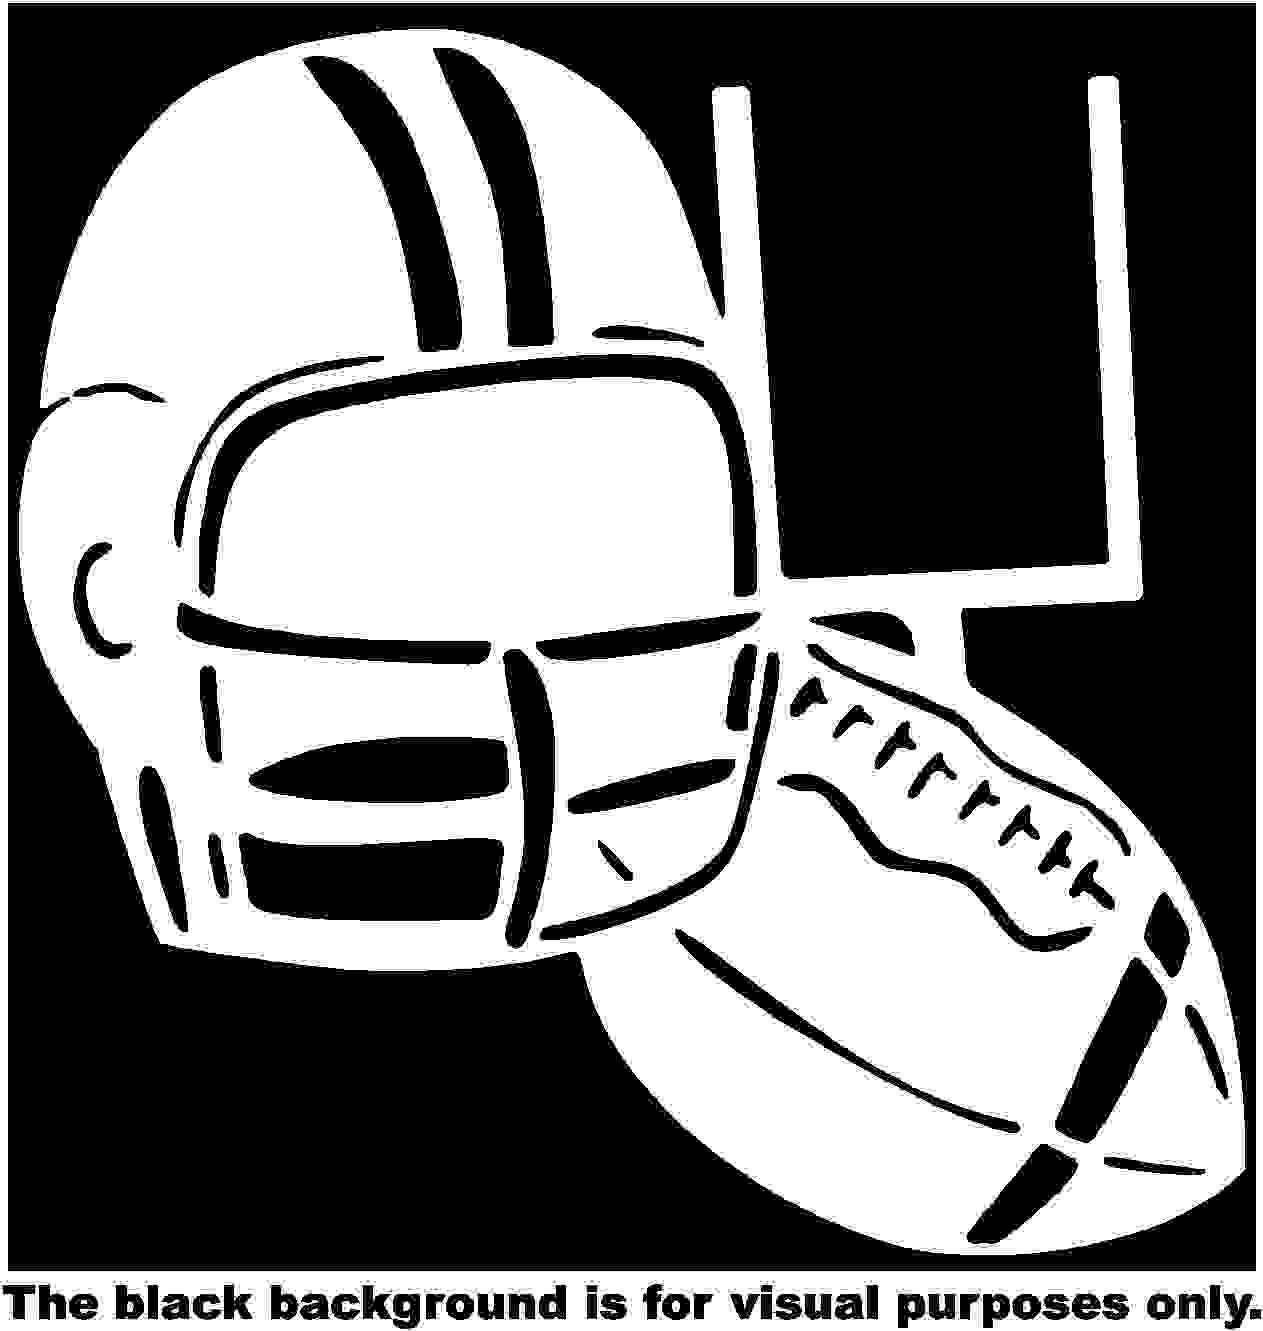 Sports Football Helmet Car Window Tumblers Wall Decal Sticker Vinyl Laptops Cellphones Phones Tablets Ipads Helmets Motorcycles Computer Towers V and T Gifts